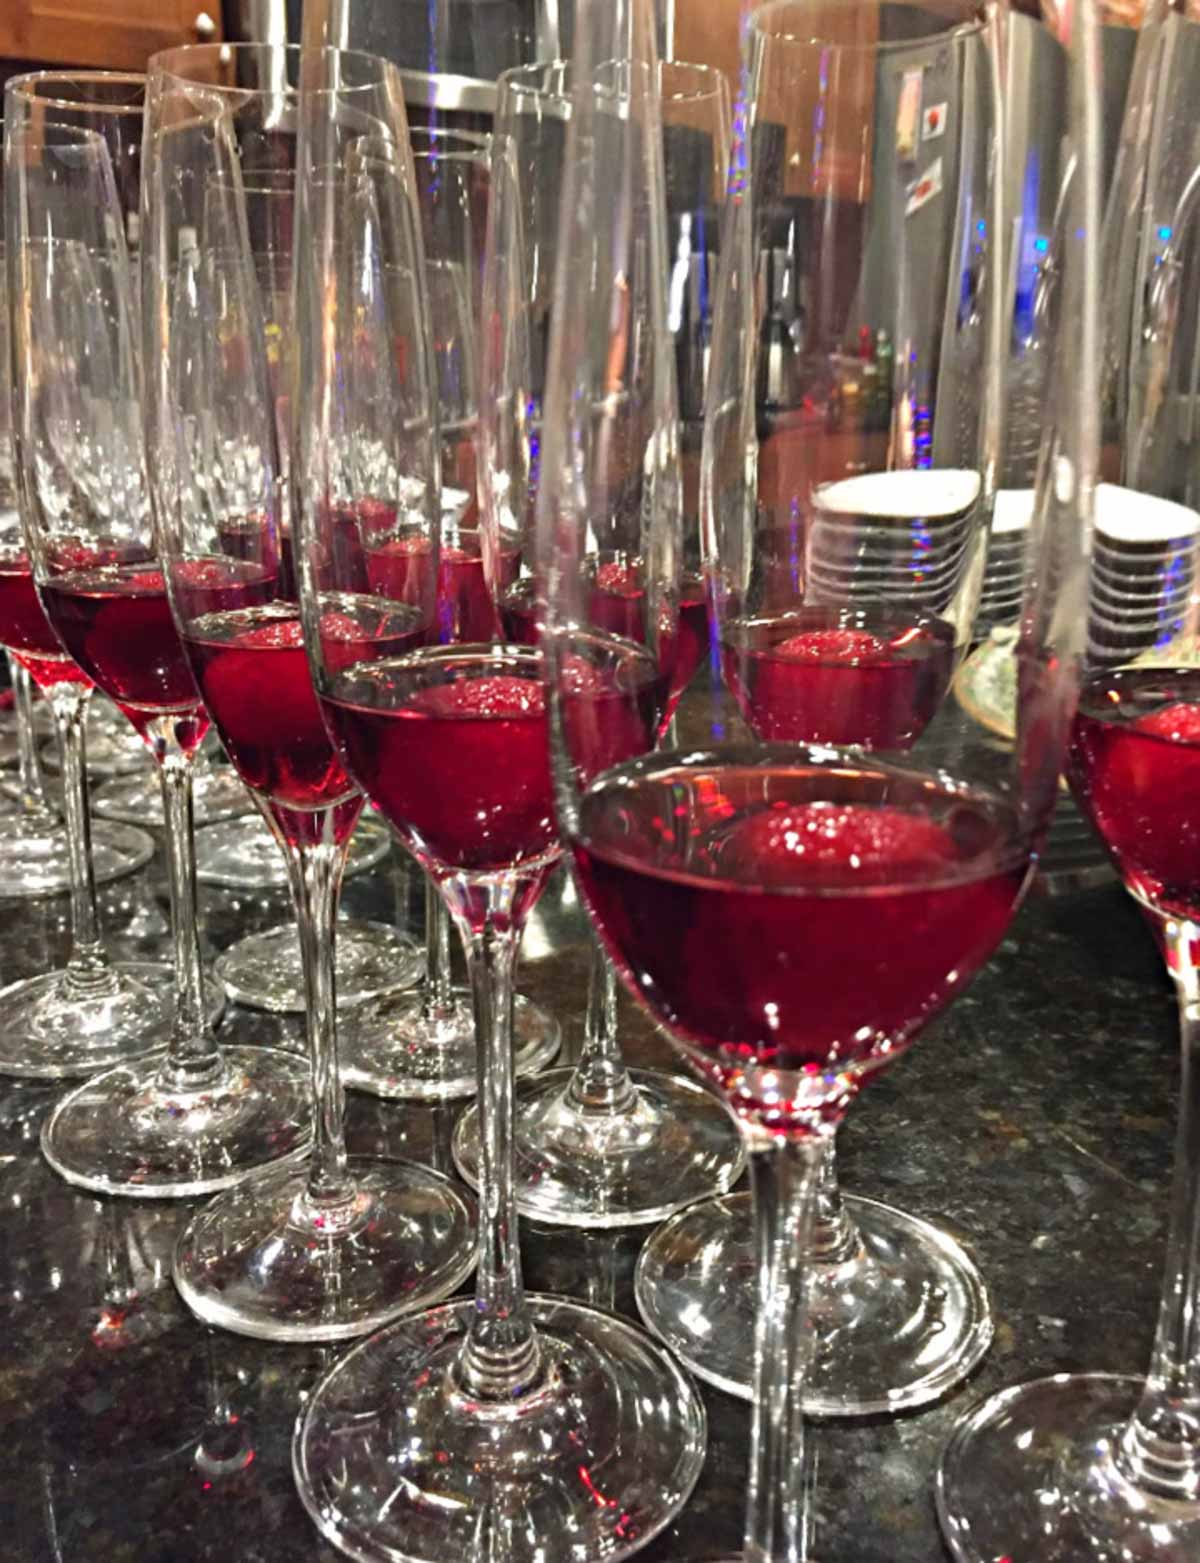 Champaign glasses lined up with chambord and raspberries, for a make ahead christmas cocktail